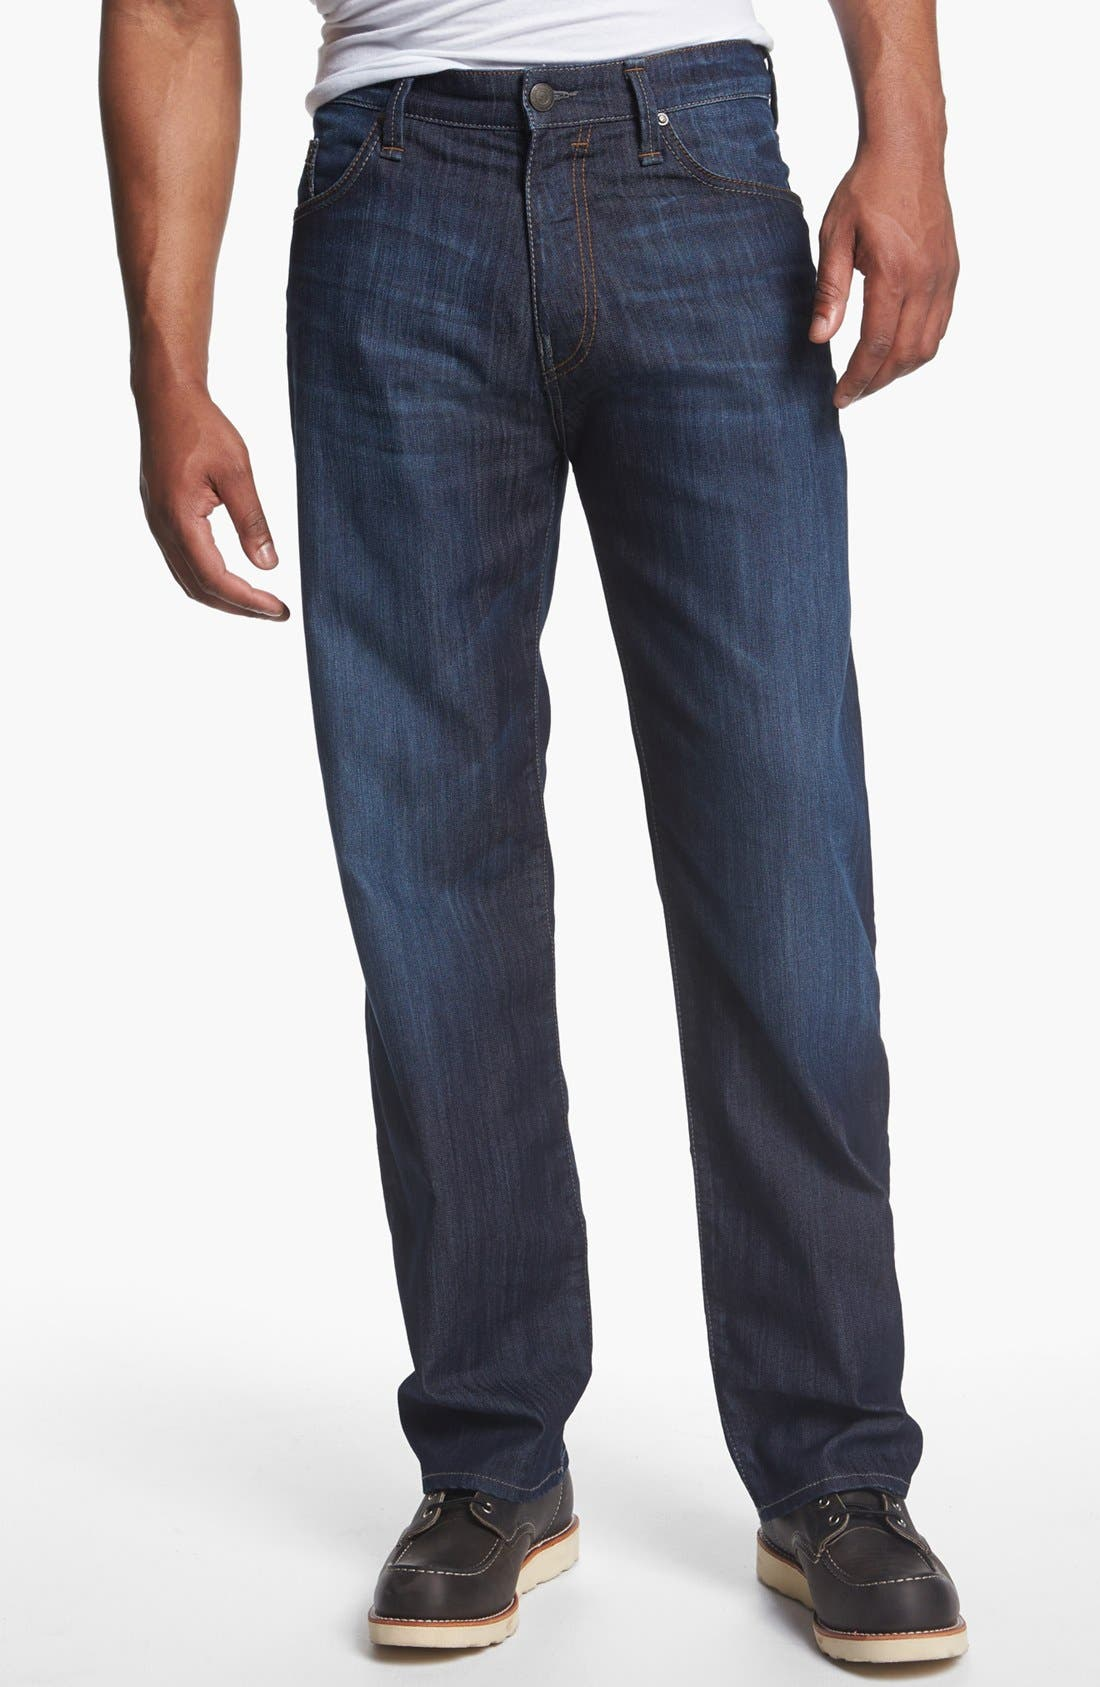 Alternate Image 2  - Mavi Jeans 'Max' Relaxed Jeans (Rinse Arizona Comfort) (Online Only)